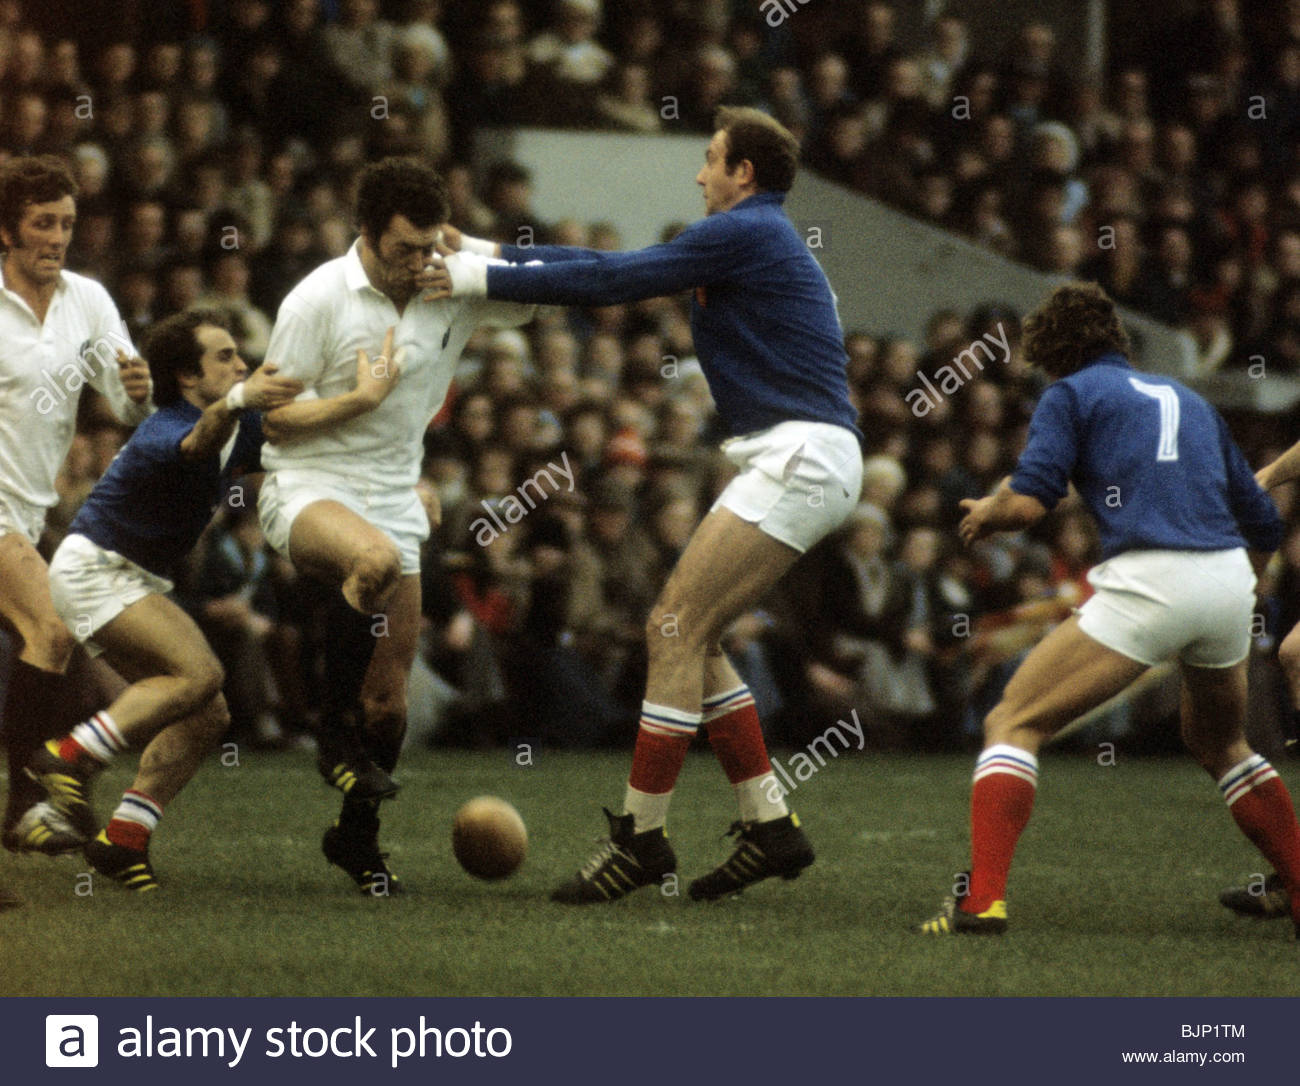 10/01/76 FIVE NATIONS SCOTLAND V FRANCE (6-13) MURRAYFIELD - EDINBURGH Scotland lock forward Alastair McHarg is - Stock Image